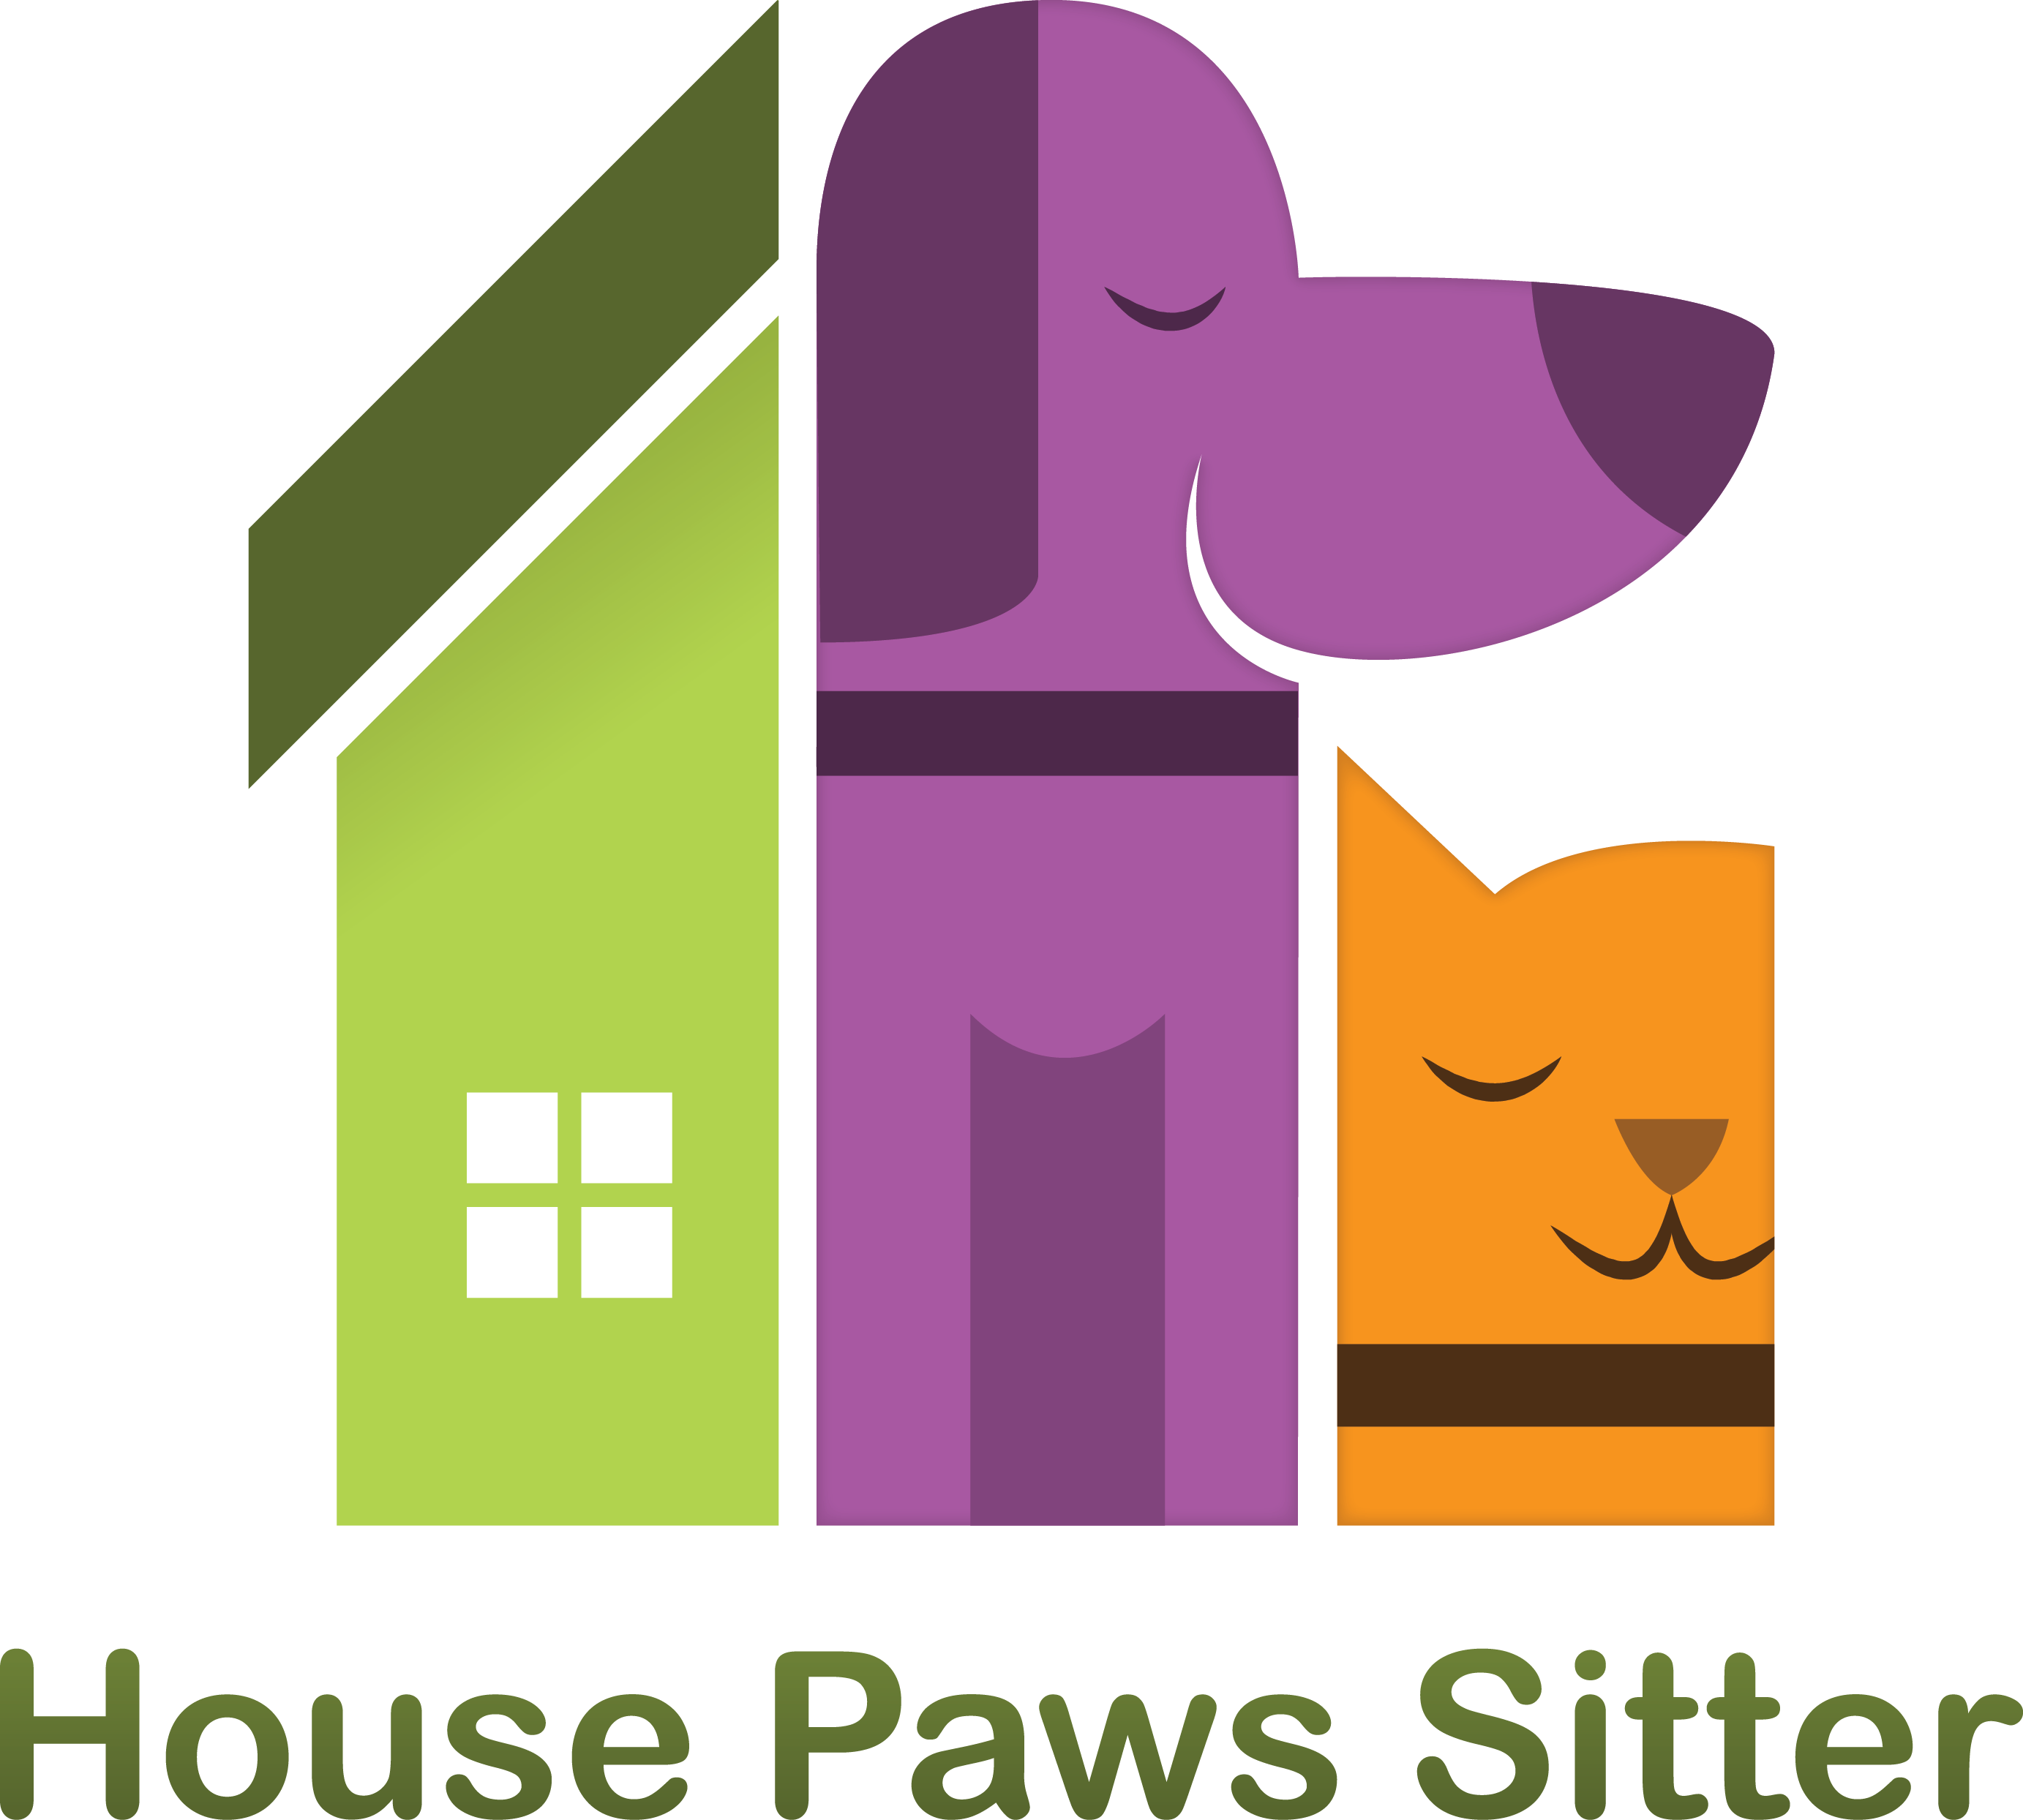 The dog is next to the house clipart graphic black and white download Home - House Paws Sitter graphic black and white download